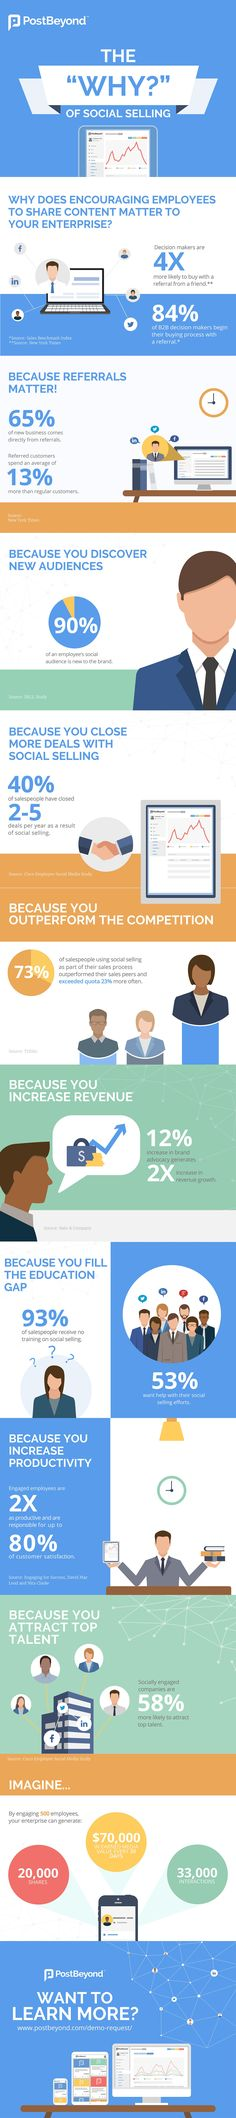 A Case for Social Selling: How It Can Increase Revenue, Productivity & More [Infographic]